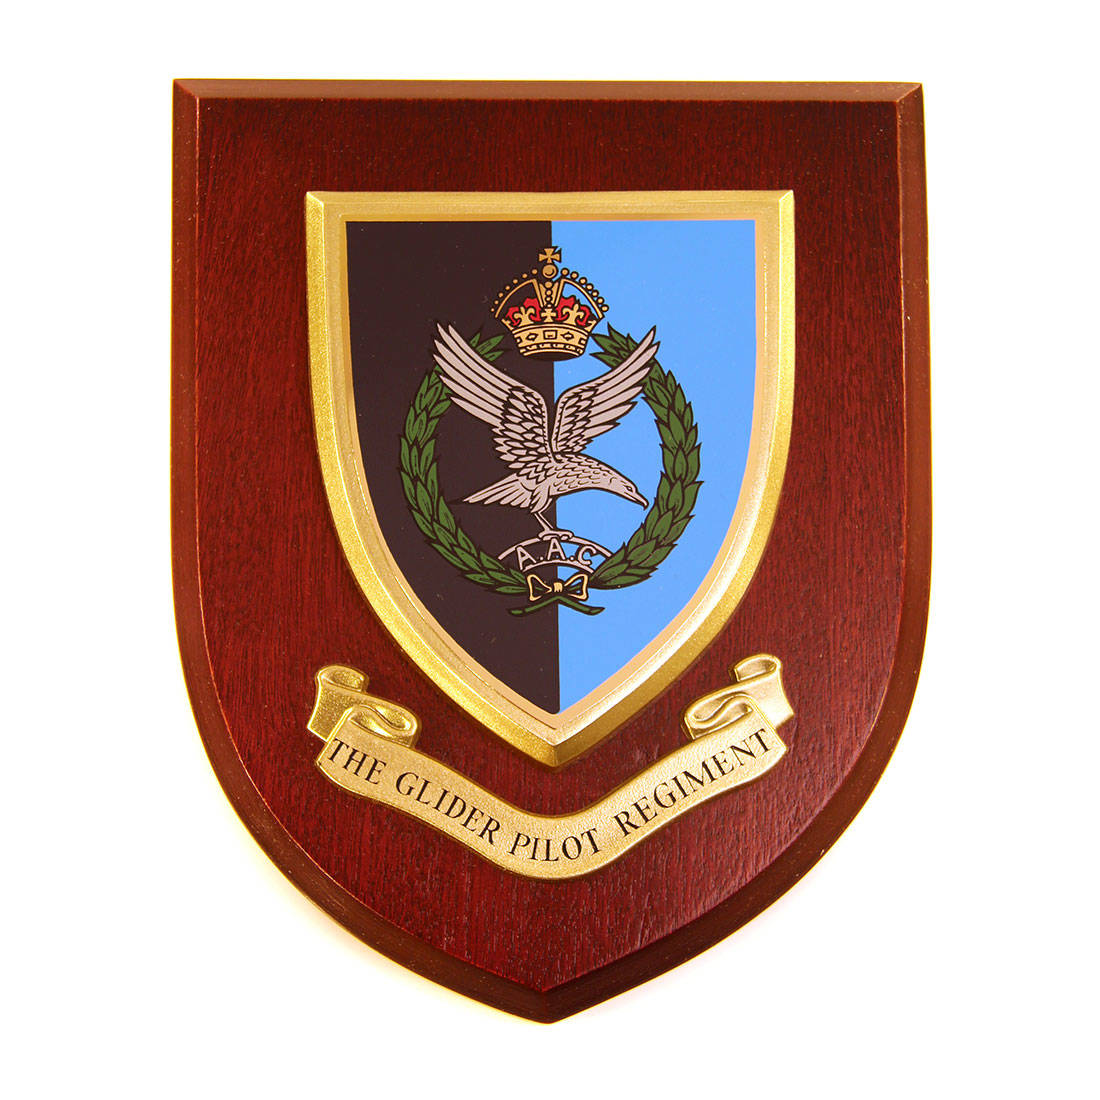 Plaque - Glider Pilot Regiment